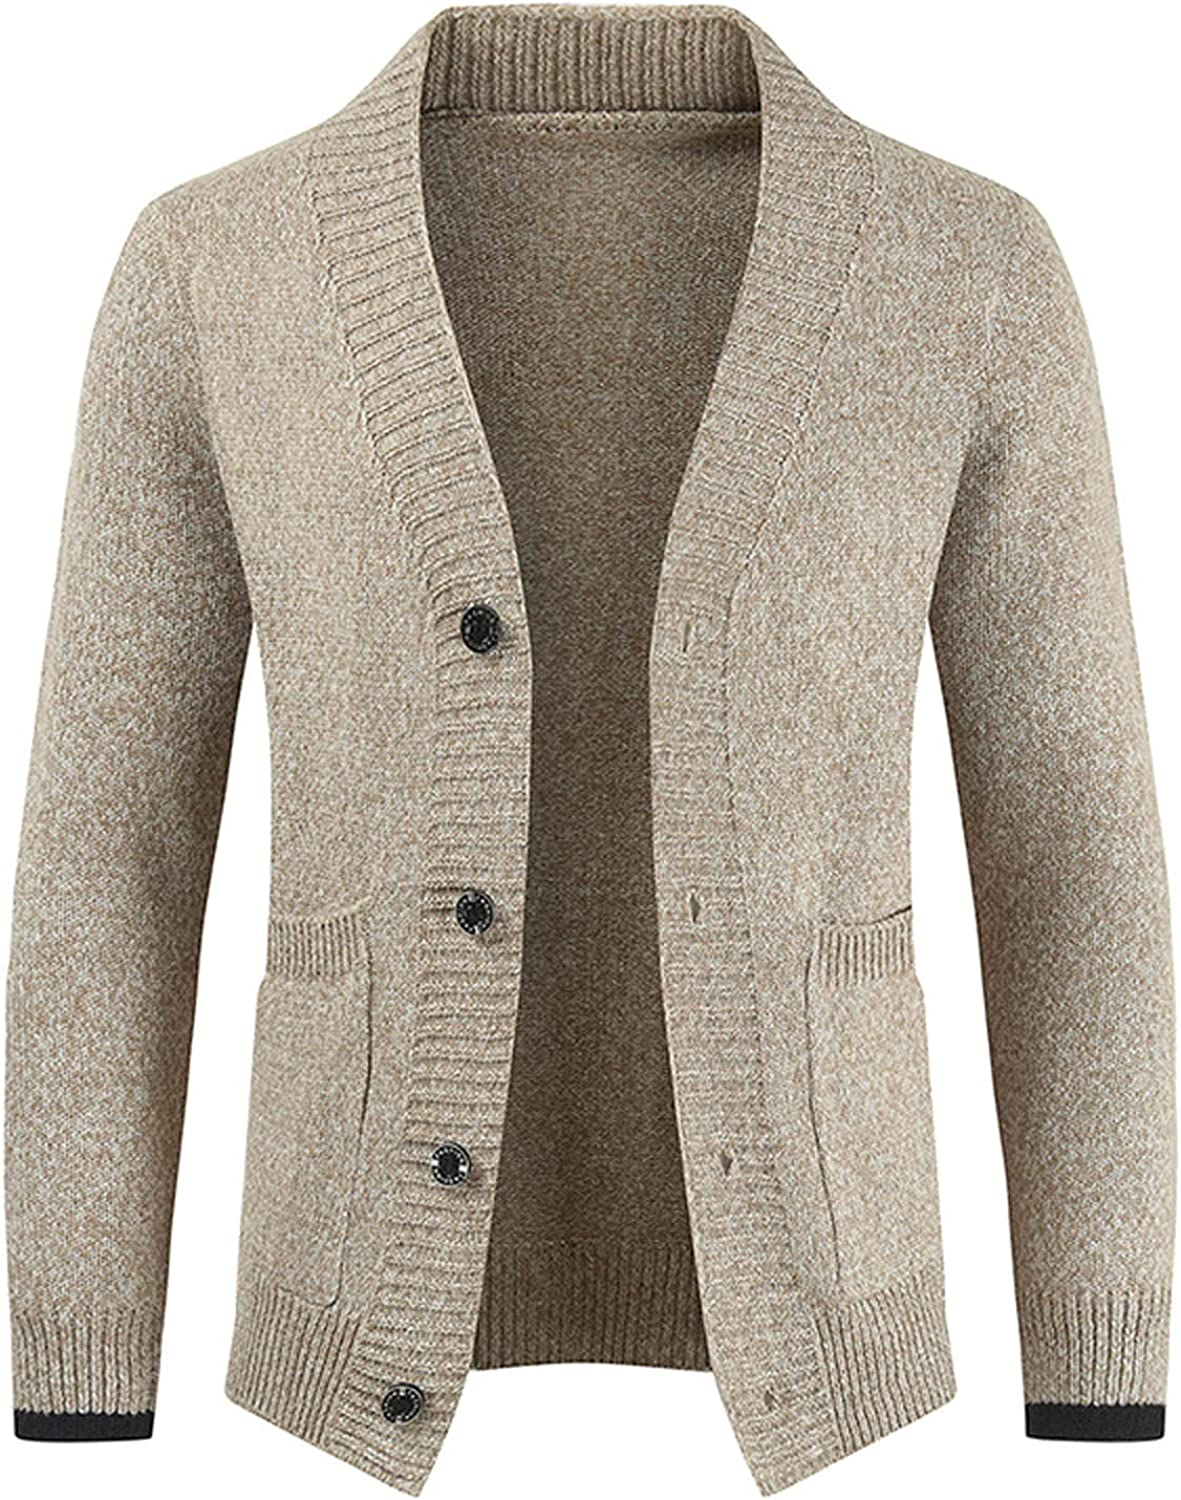 Huangse Mens Cable Knit Cardigan Sweater Loose Fit Long Sleeve Casual Cardigans Thick Warm V Neck Button Down Sweaters